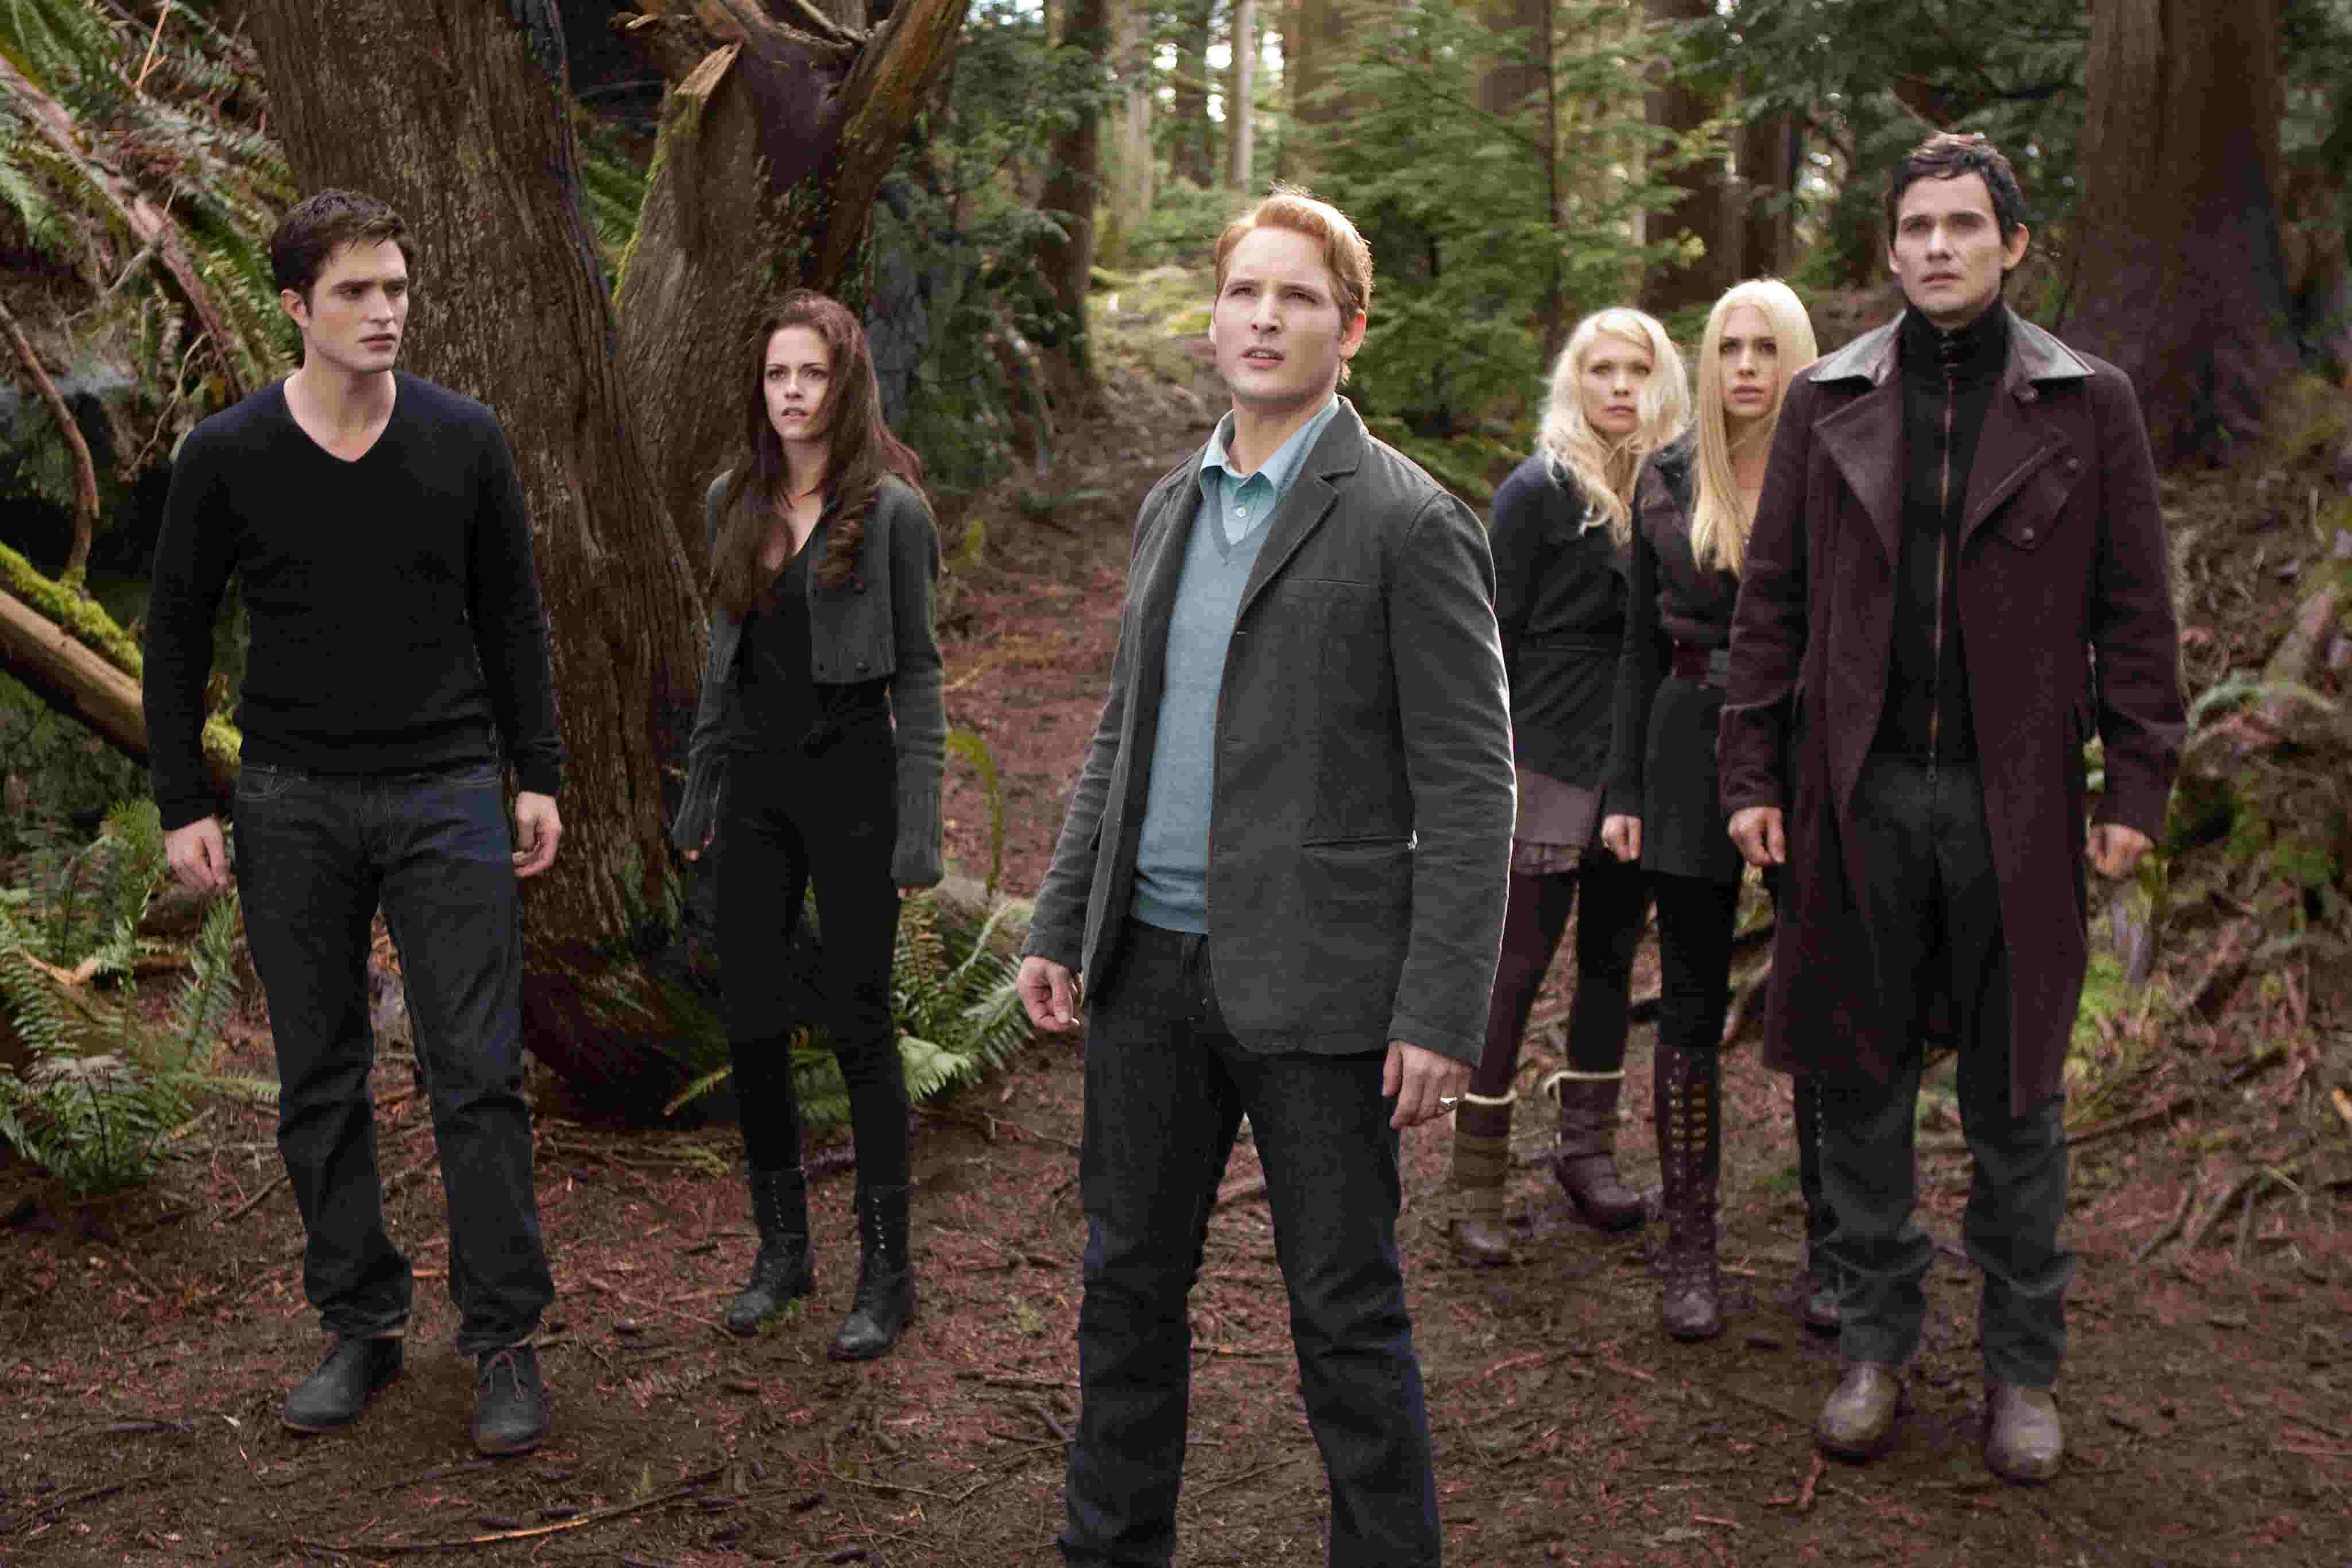 Trailer: 'The Twilight Saga: Breaking Dawn - Part 2'